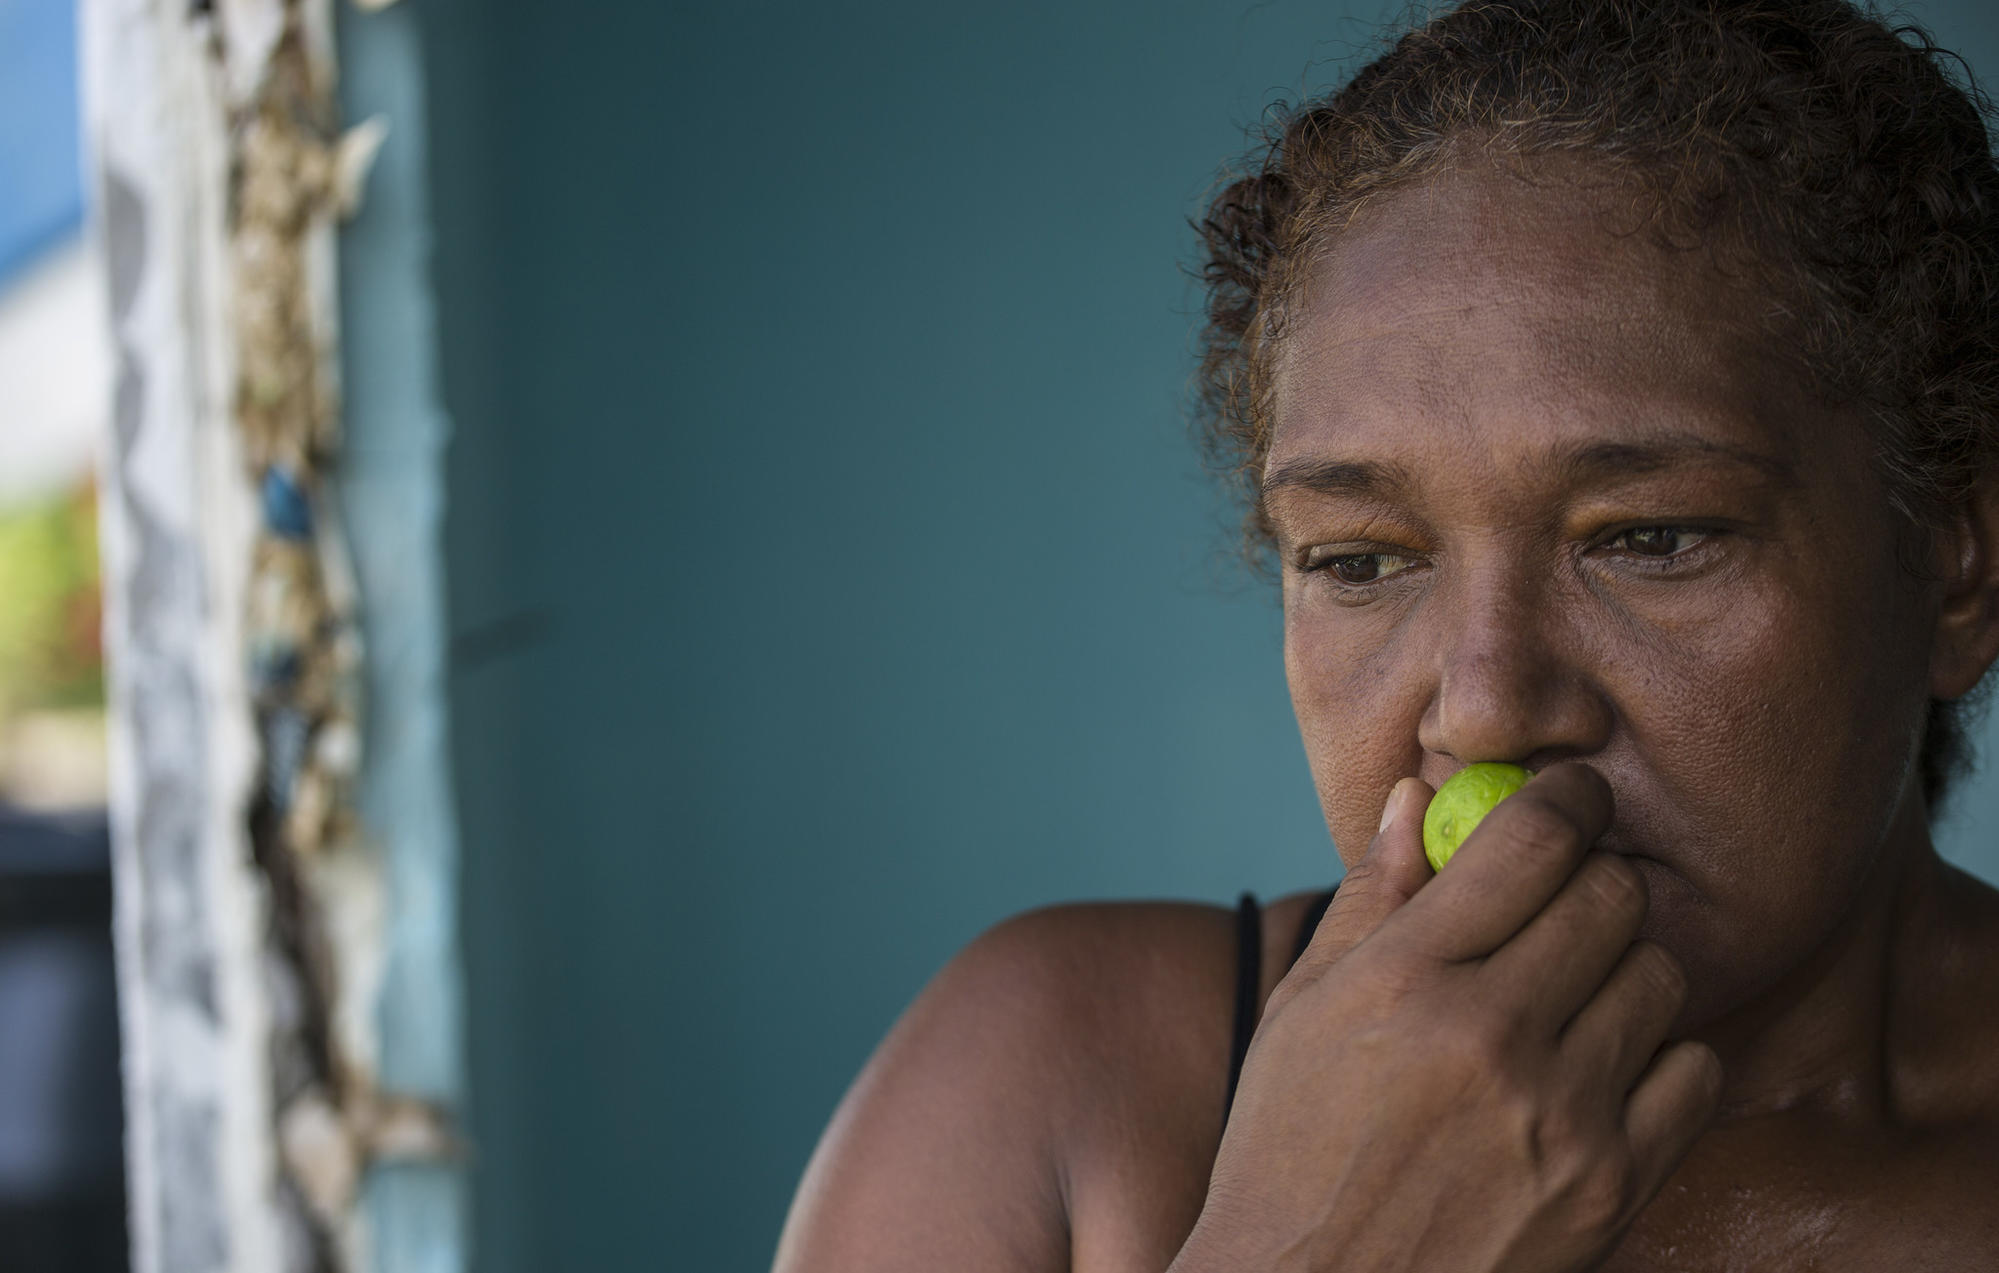 Adela Blanco, 47, holds a lime to her nose to mask the odor of raw sewage, which flows through the streets of the Colinas de Santa Fe development in Veracruz, Mexico.